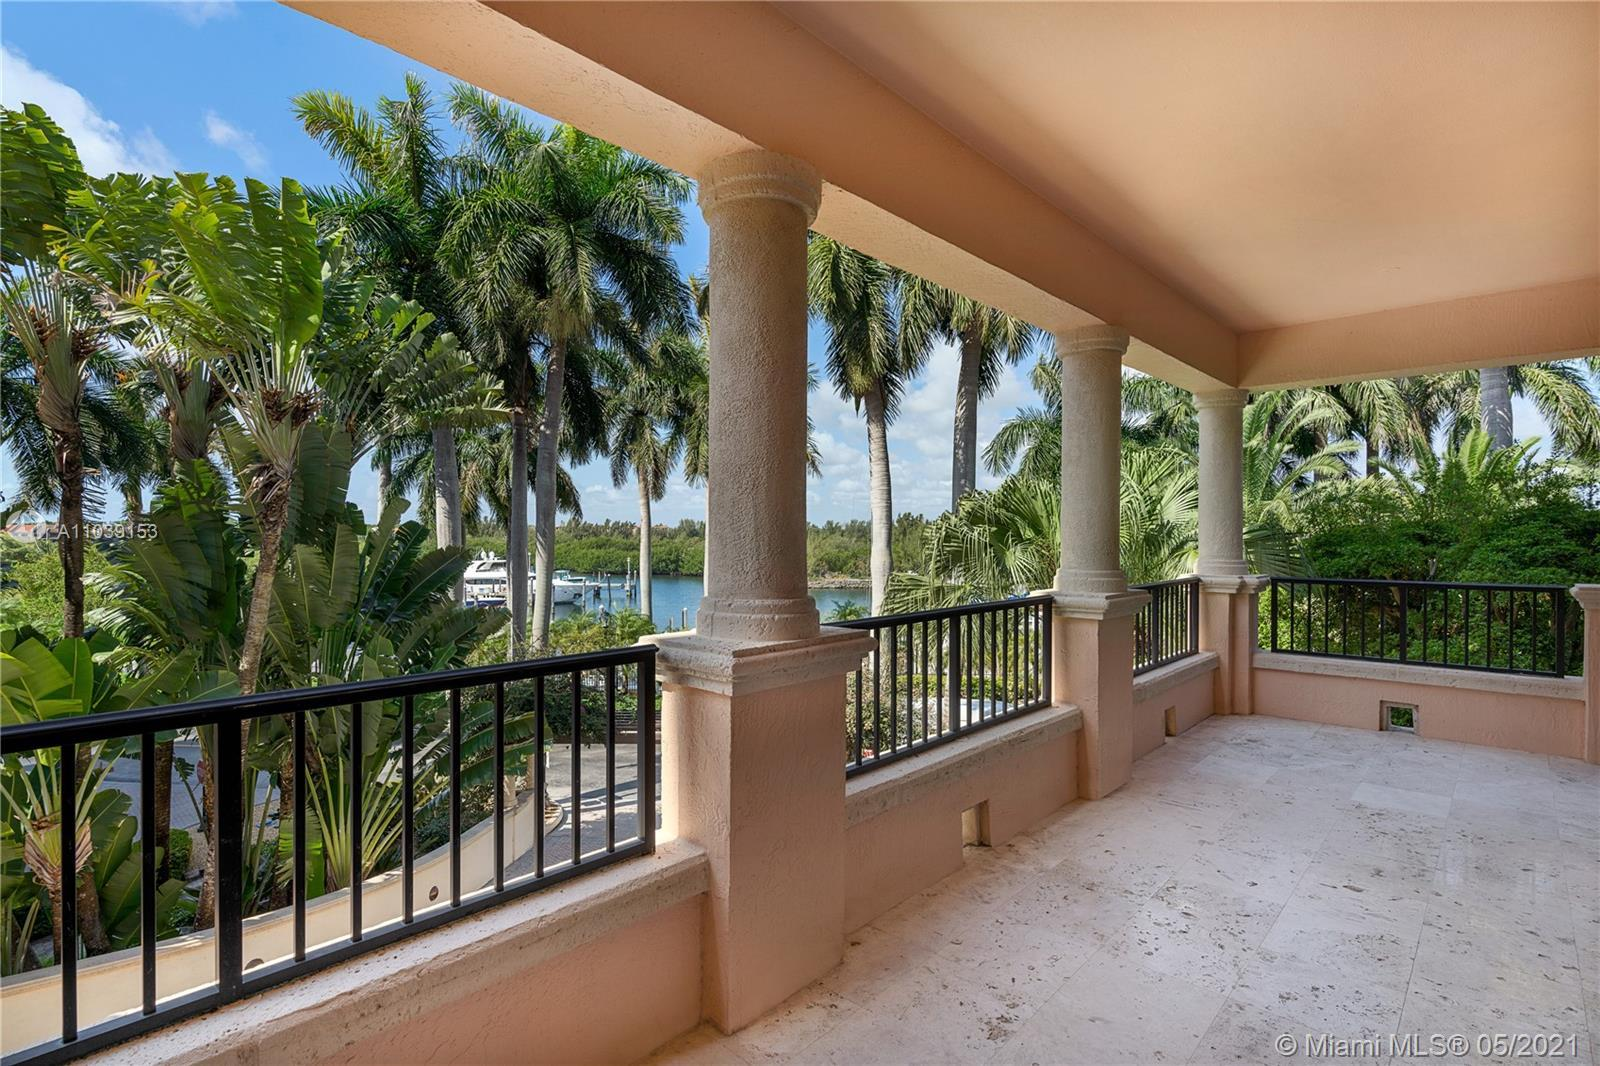 Sophisticated, modern, and spacious in Venice at Deering Bay. This elegantly appointed 2,750 SF resi